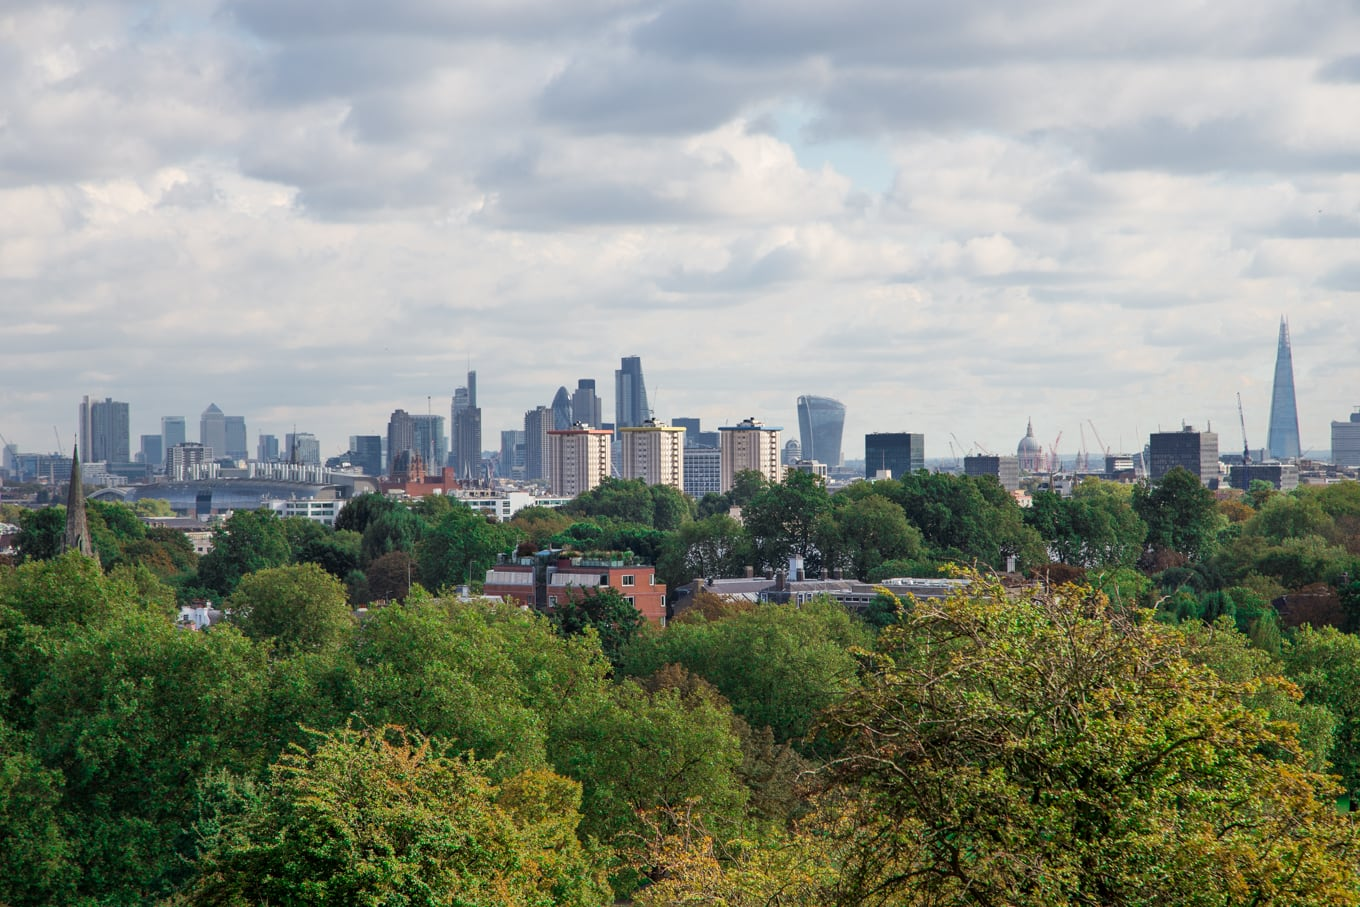 Panoramic photo of the London city skyline from Primrose Hill Park.